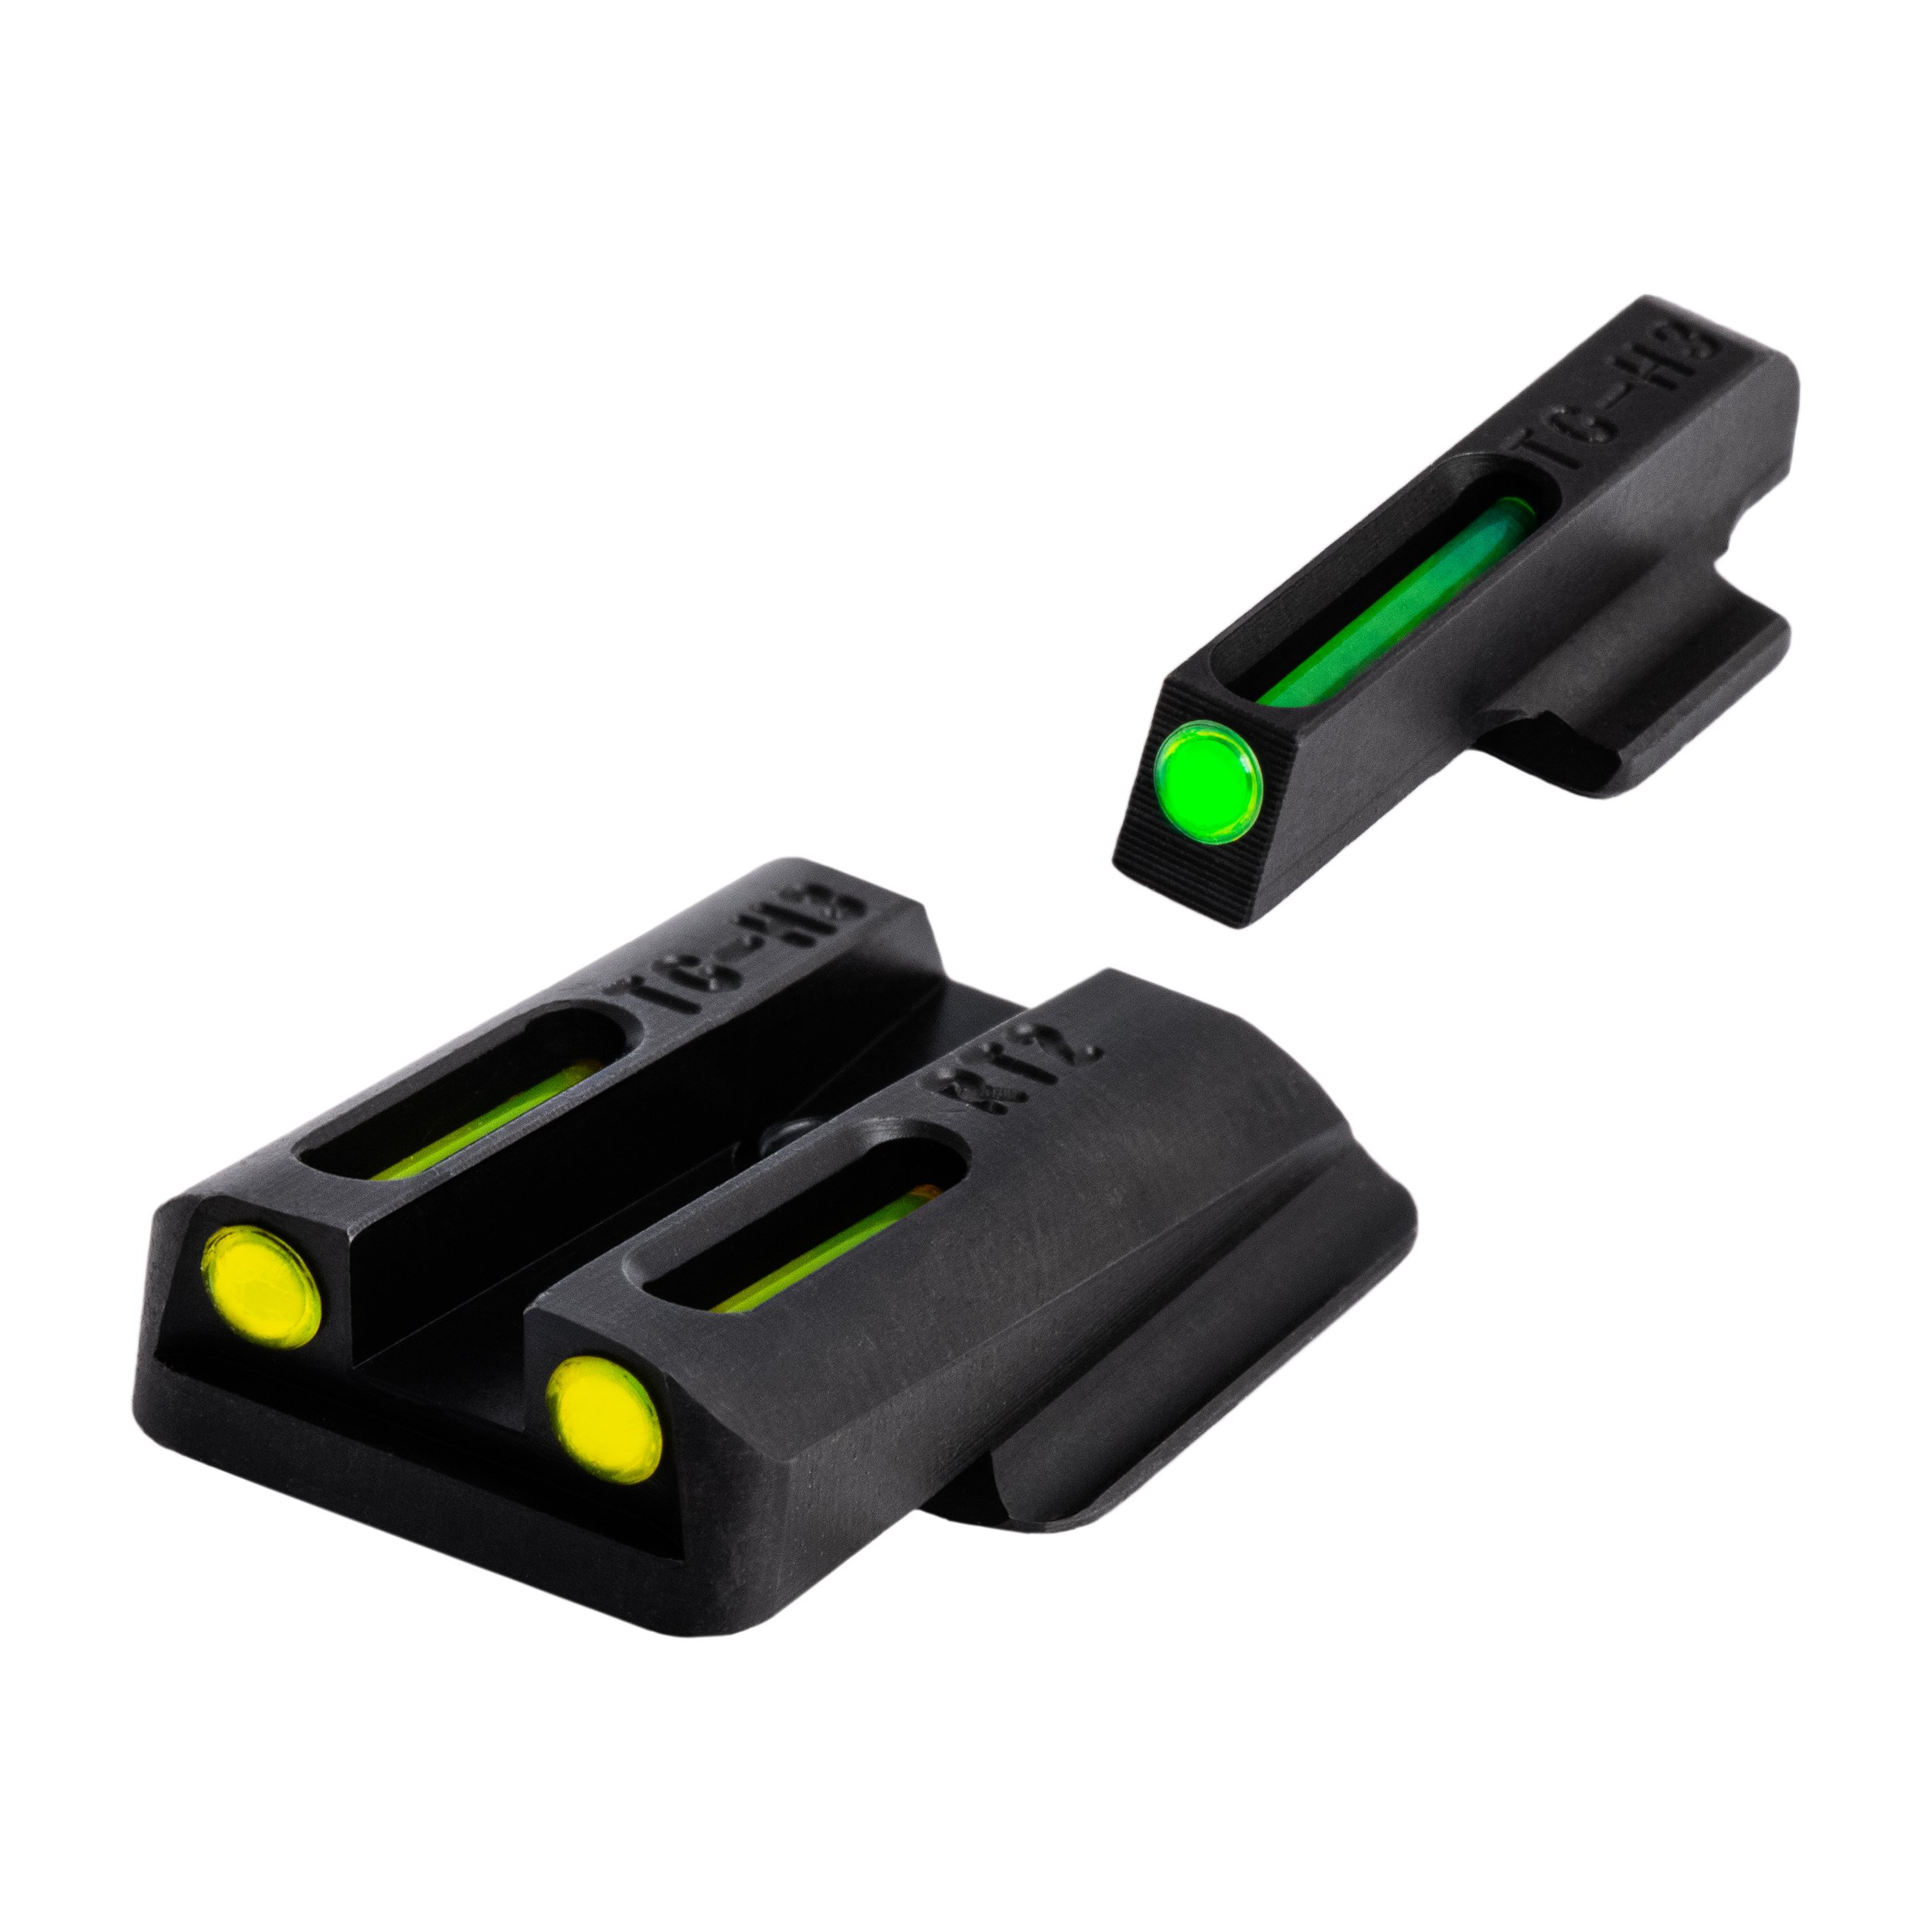 TRUGLO TFO Tritium and Fiber-Optic Handgun Sights for Ruger Pistols, Ruger LC9 / 9S / 380, Green Front, Yellow Rear by TRUGLO